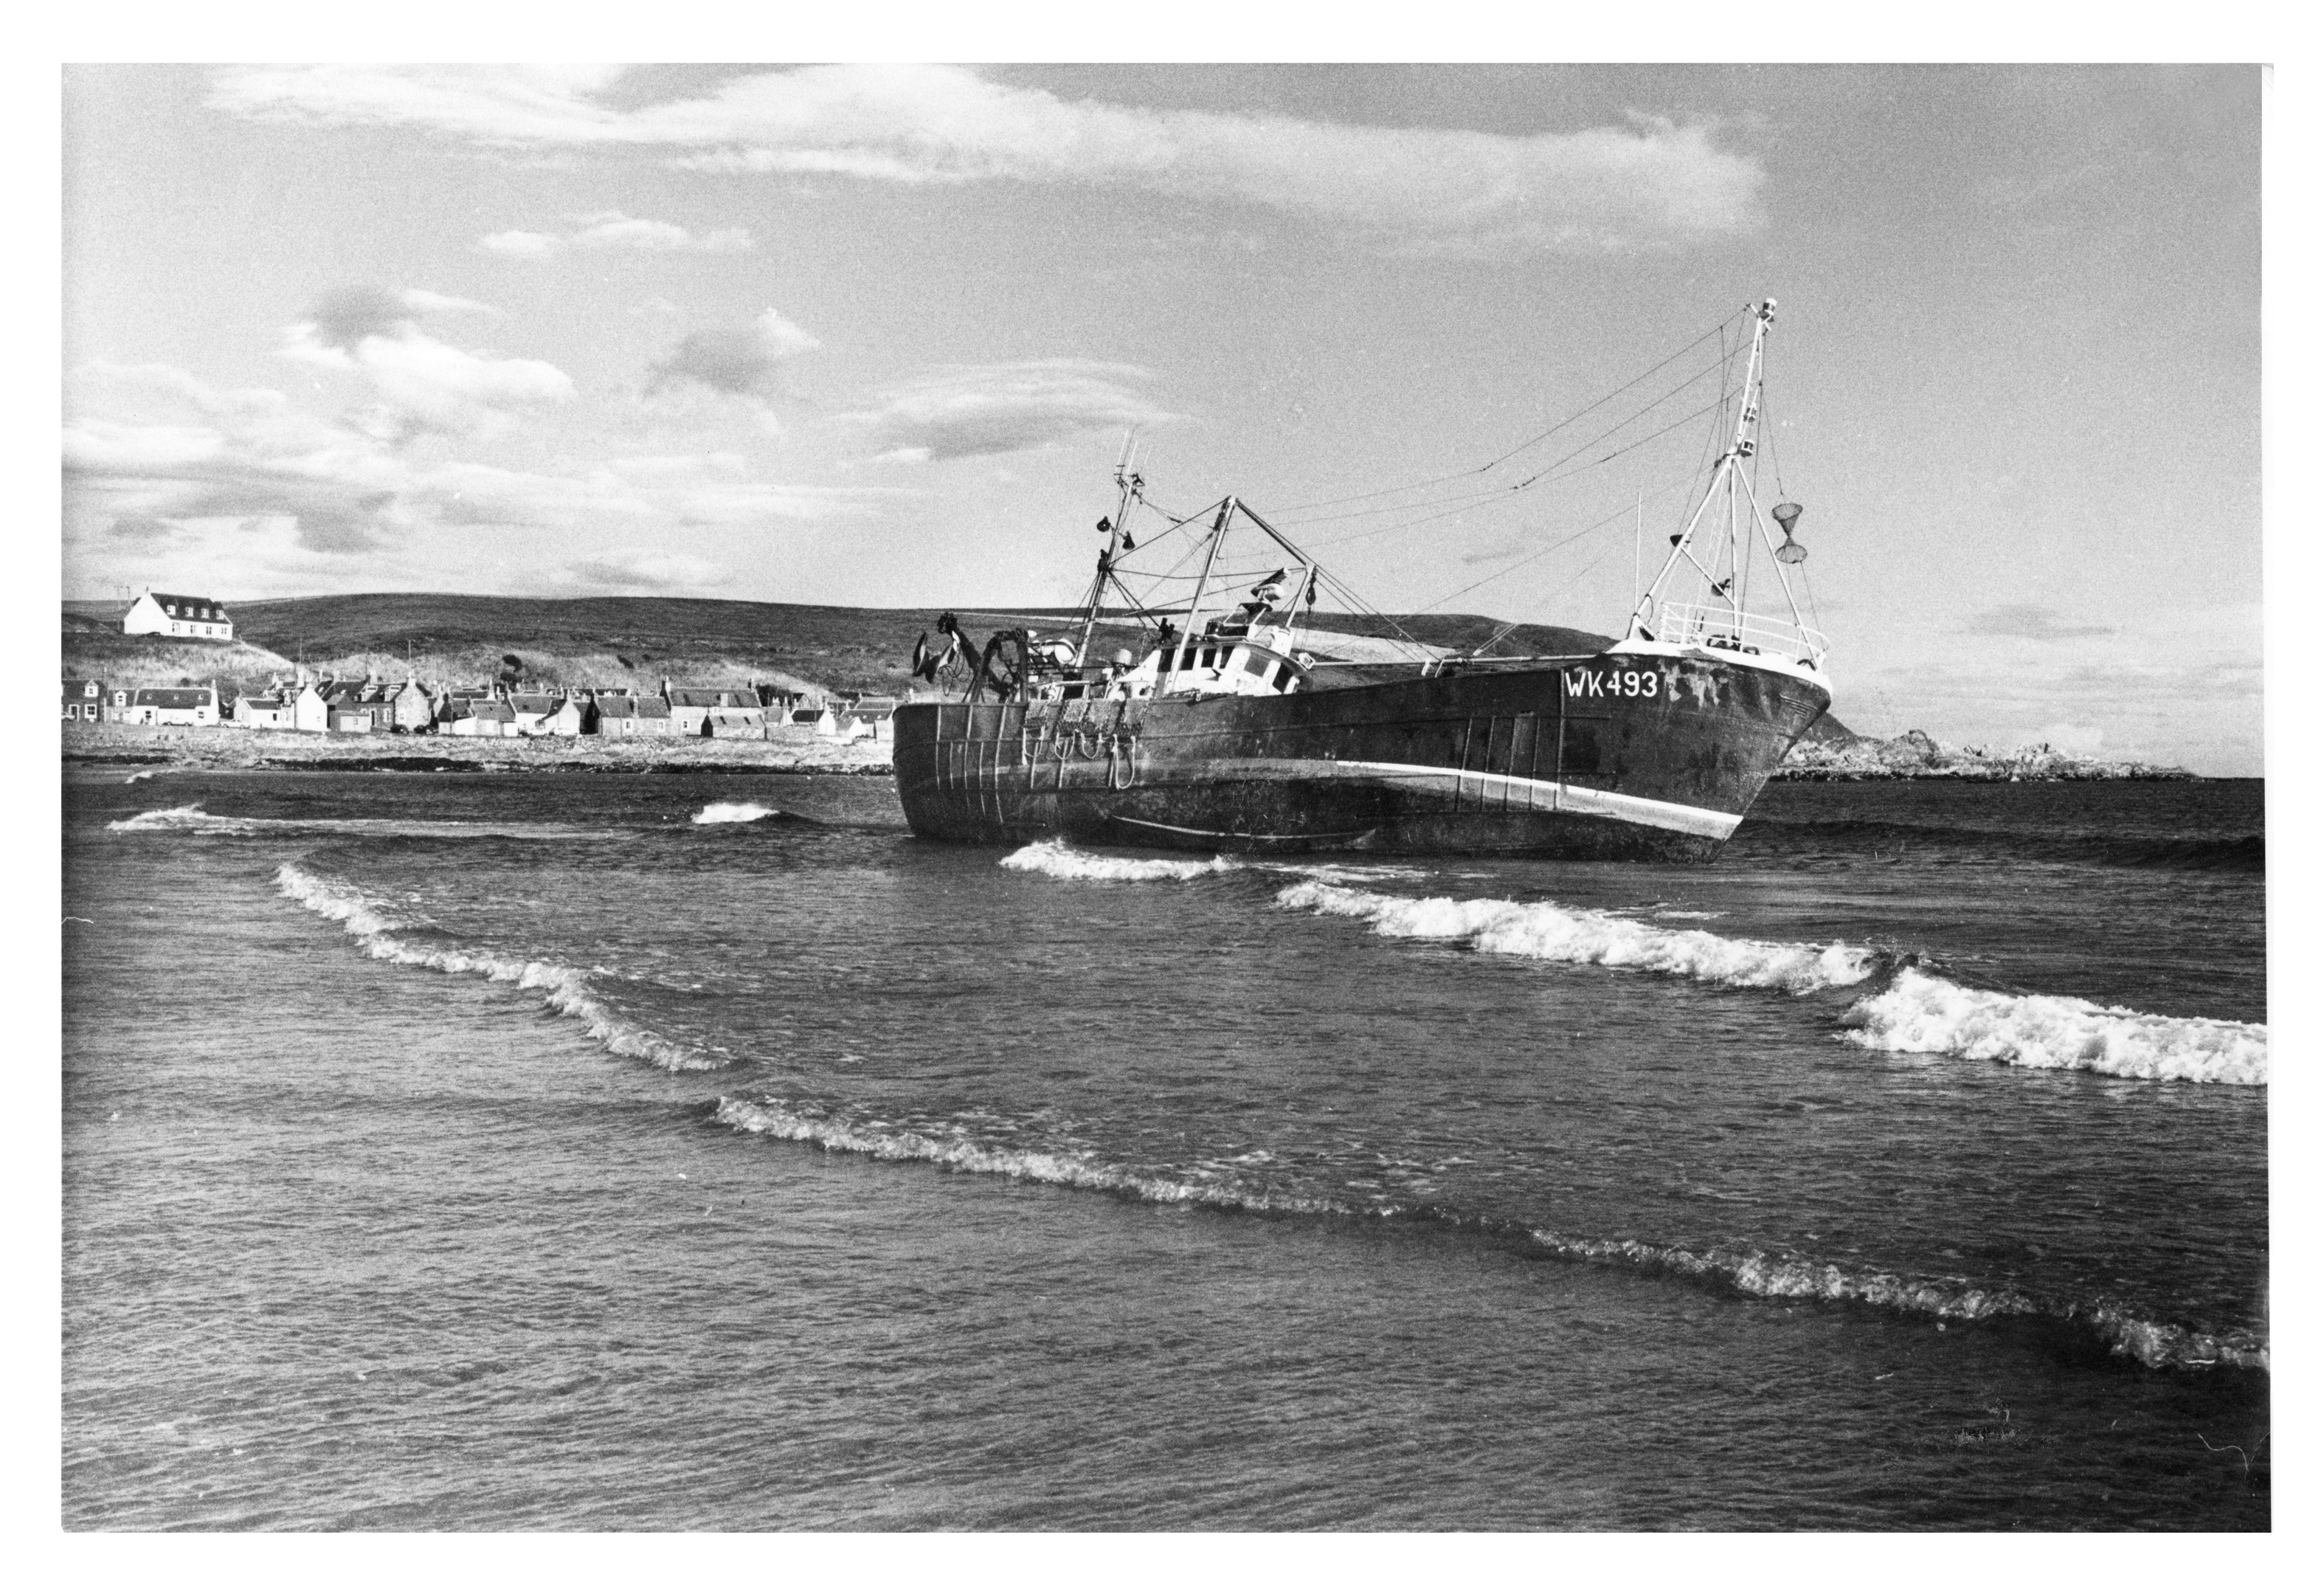 The Wick-registered steel trawler, Fram, aground on the beach at Sandend, near Portsoy.